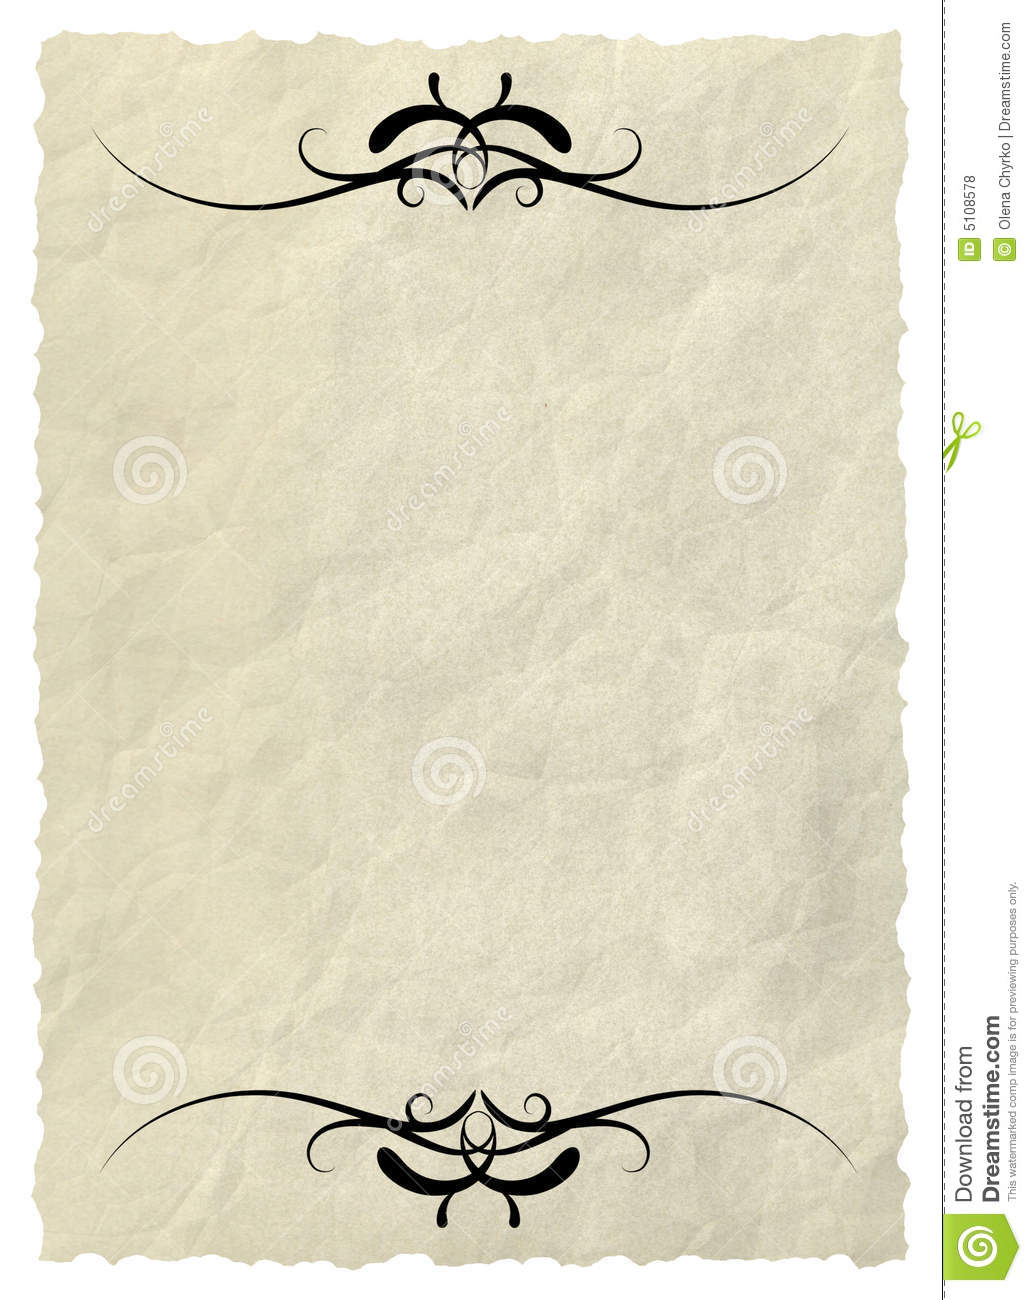 Old paper with decorative elements royalty free stock for Decorative paper